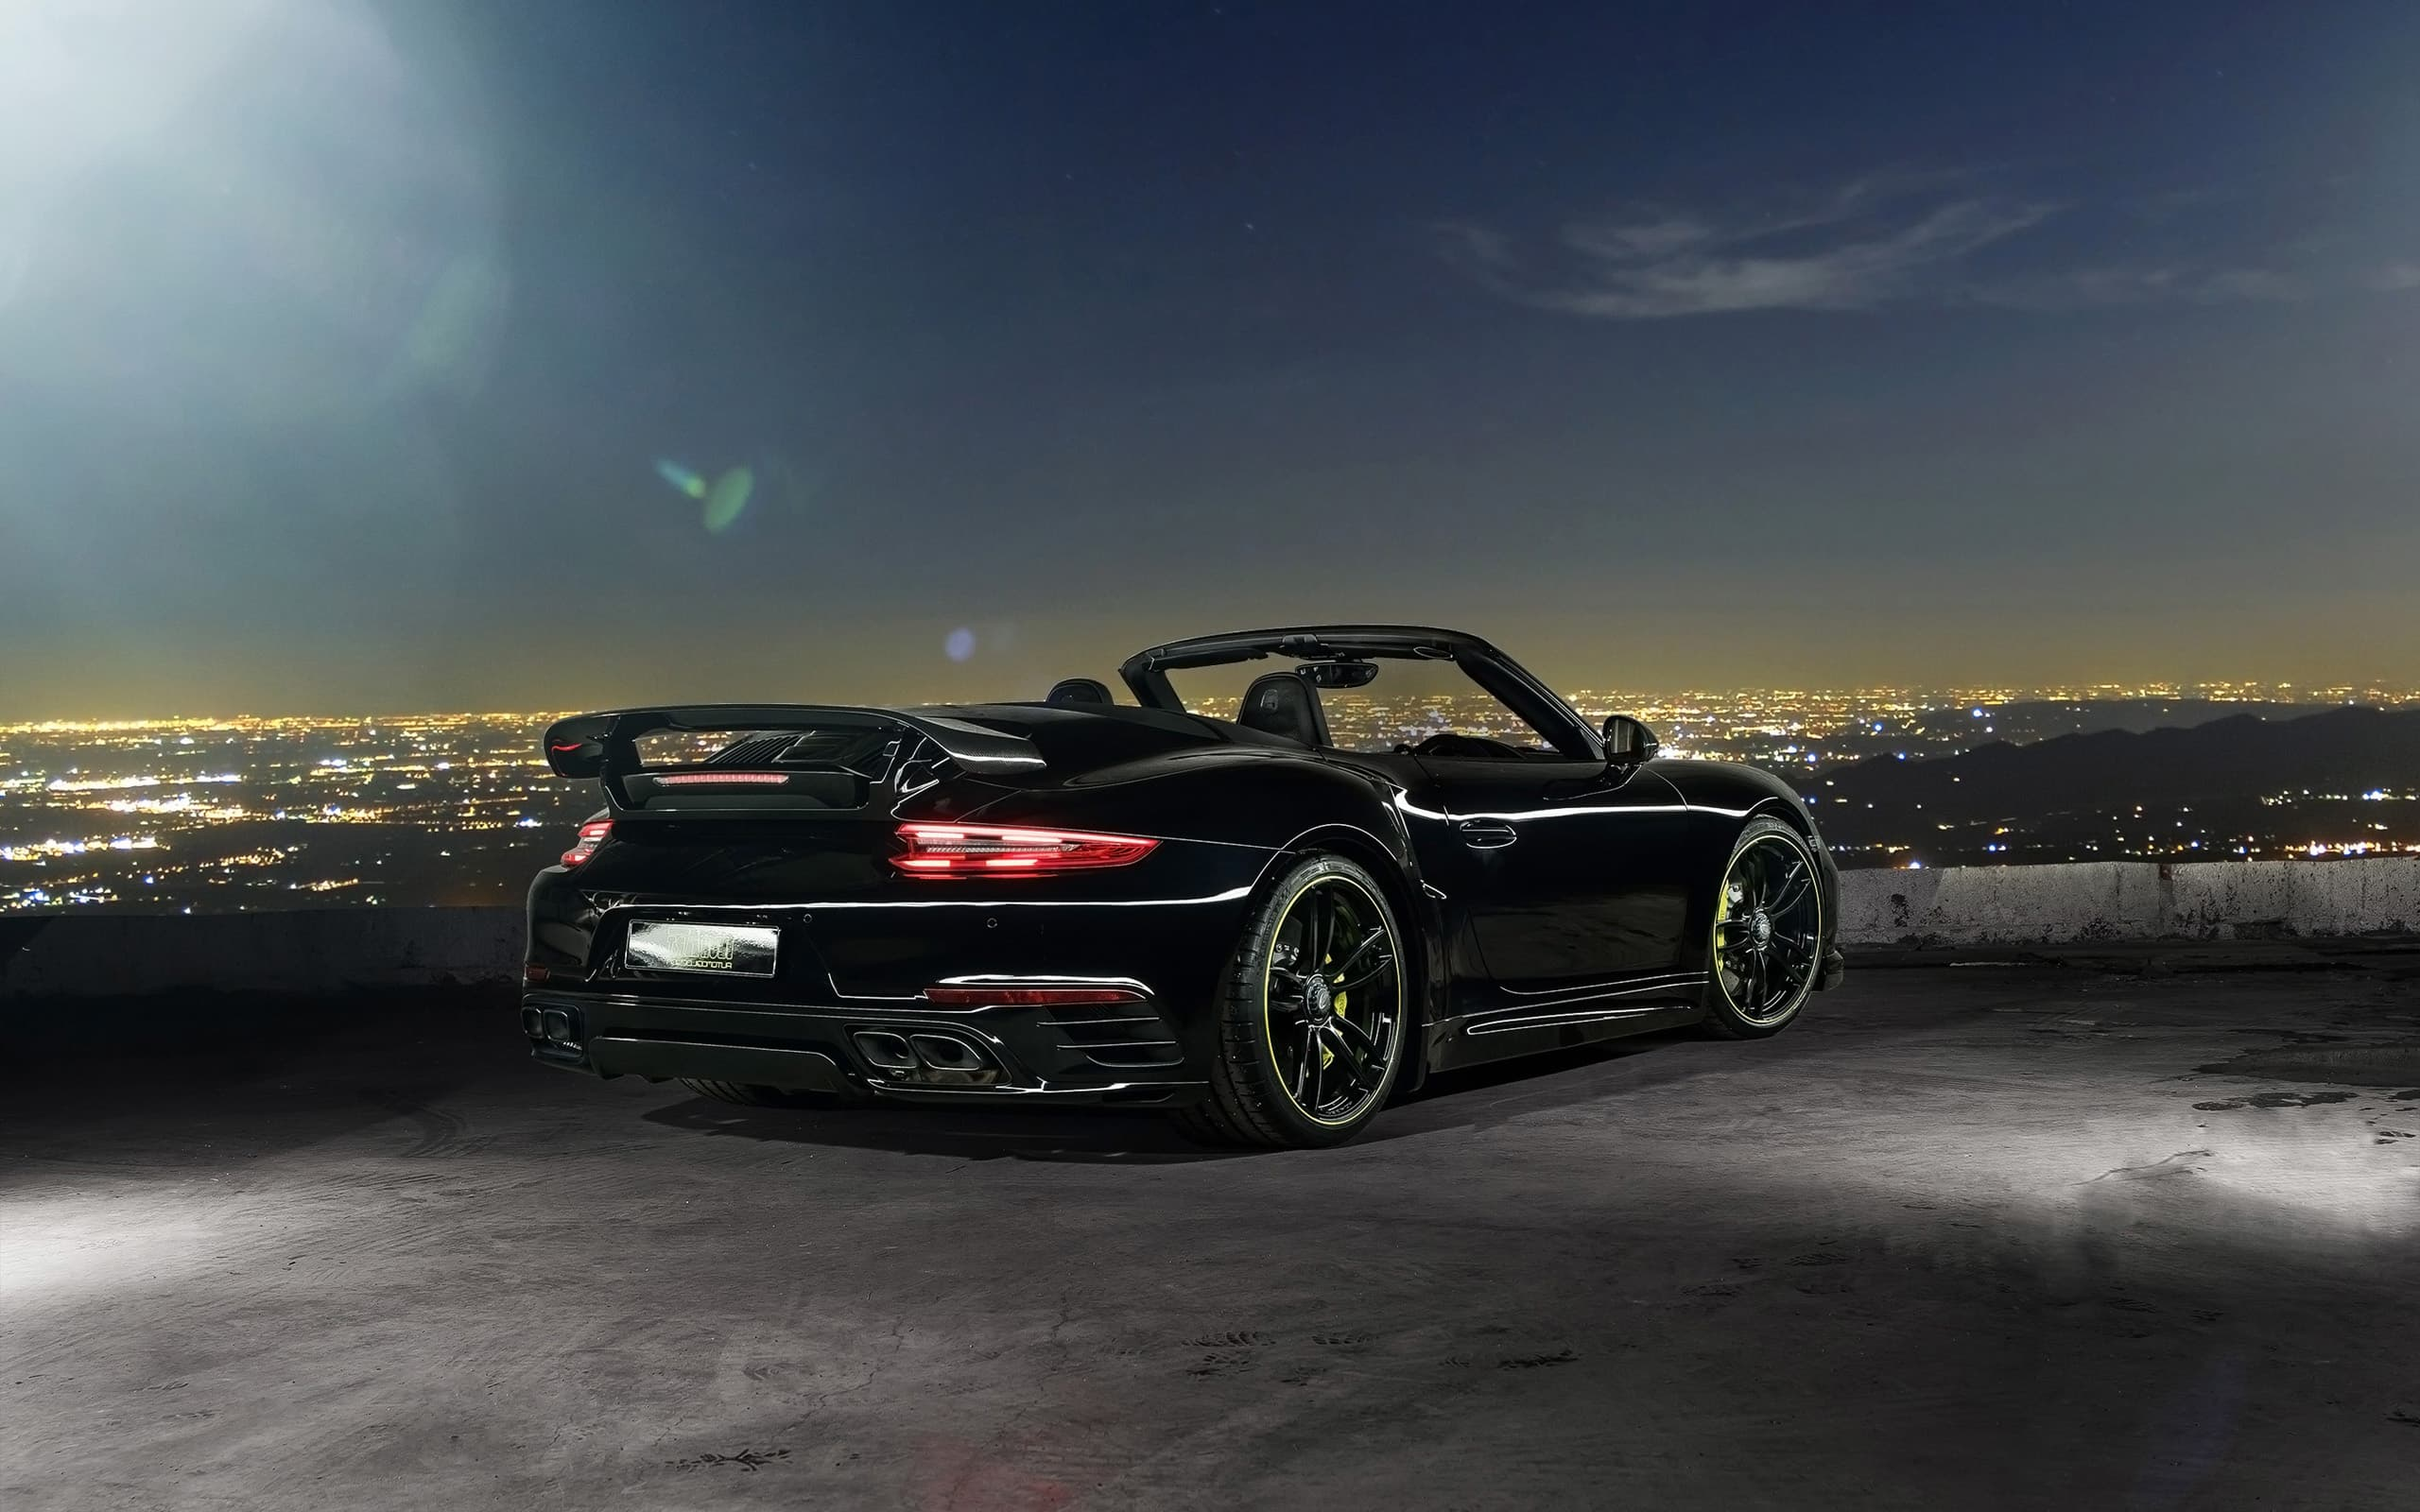 Black And Red Wallpaper Hd 2016 Porsche 911 Cabriolet Techart Wallpapers Hd Black At